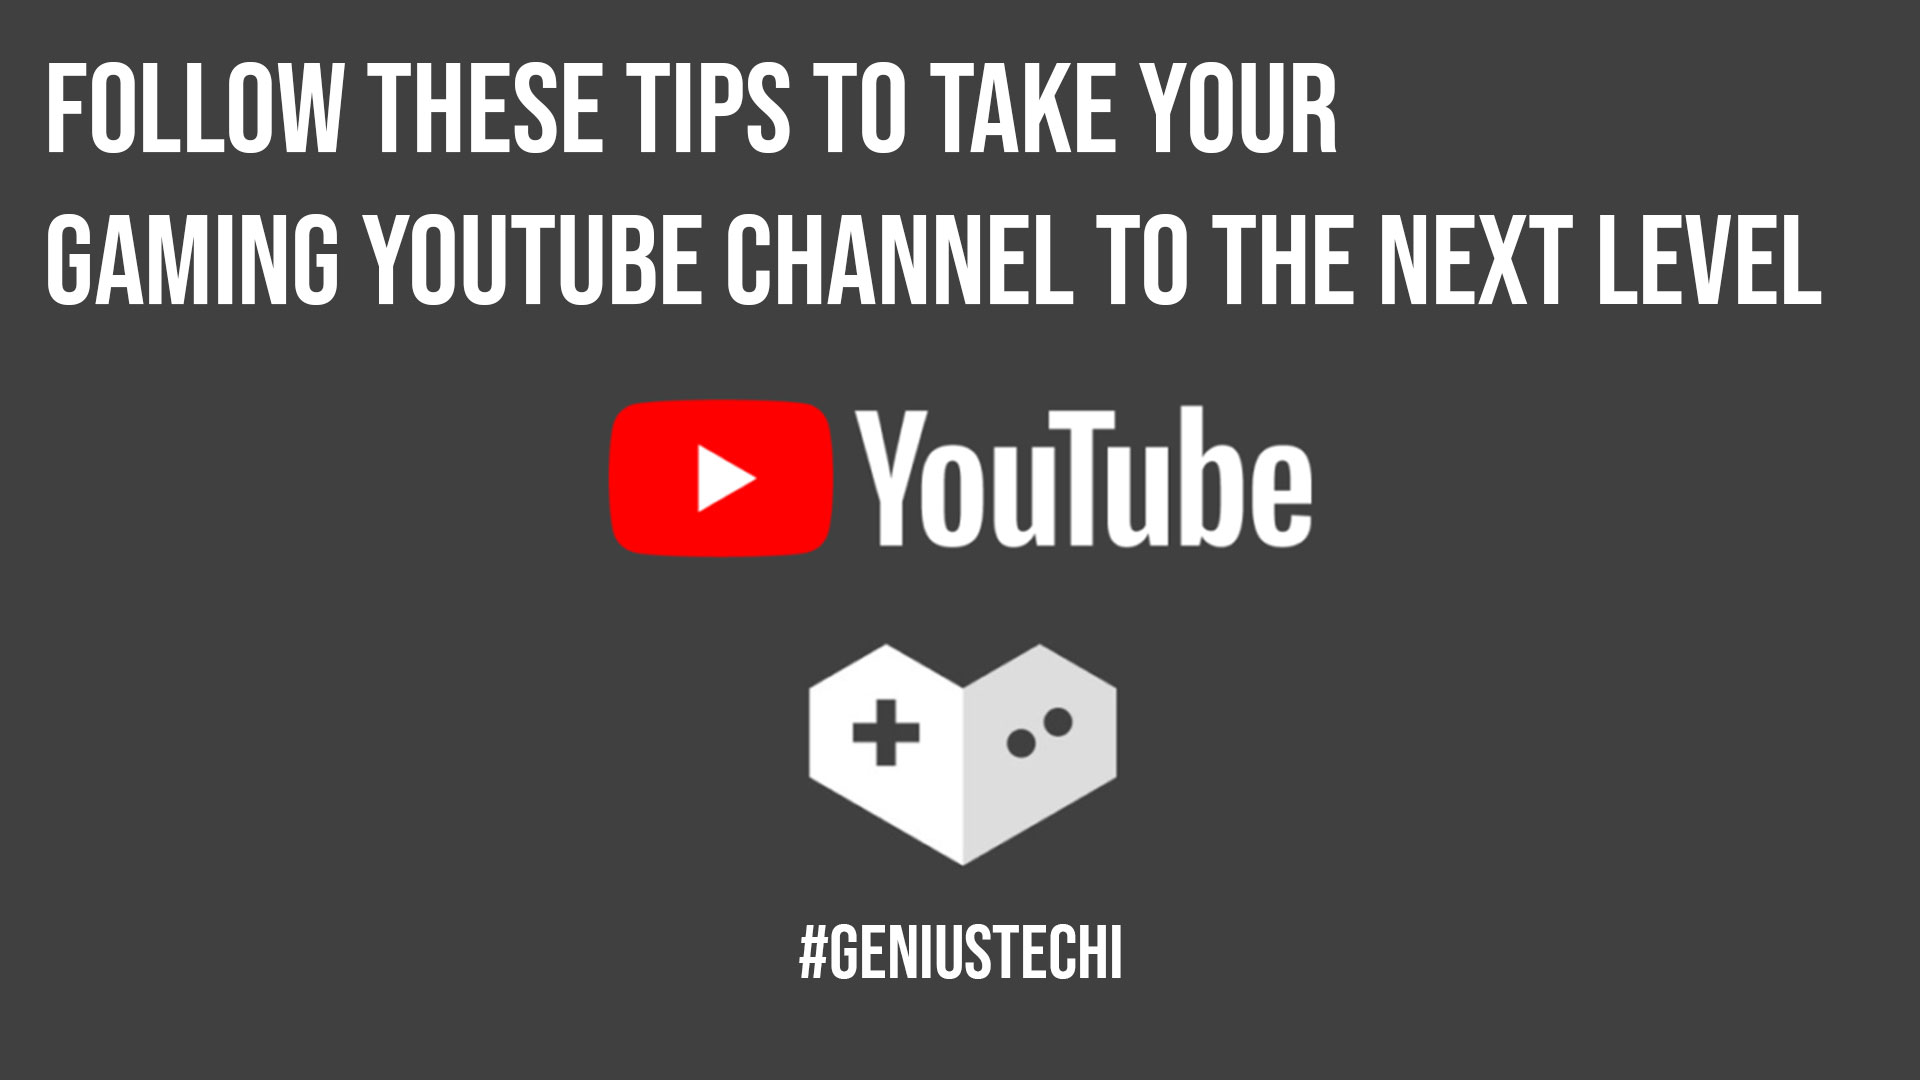 Follow These Tips To Take Your Gaming YouTube Channel To The Next Level